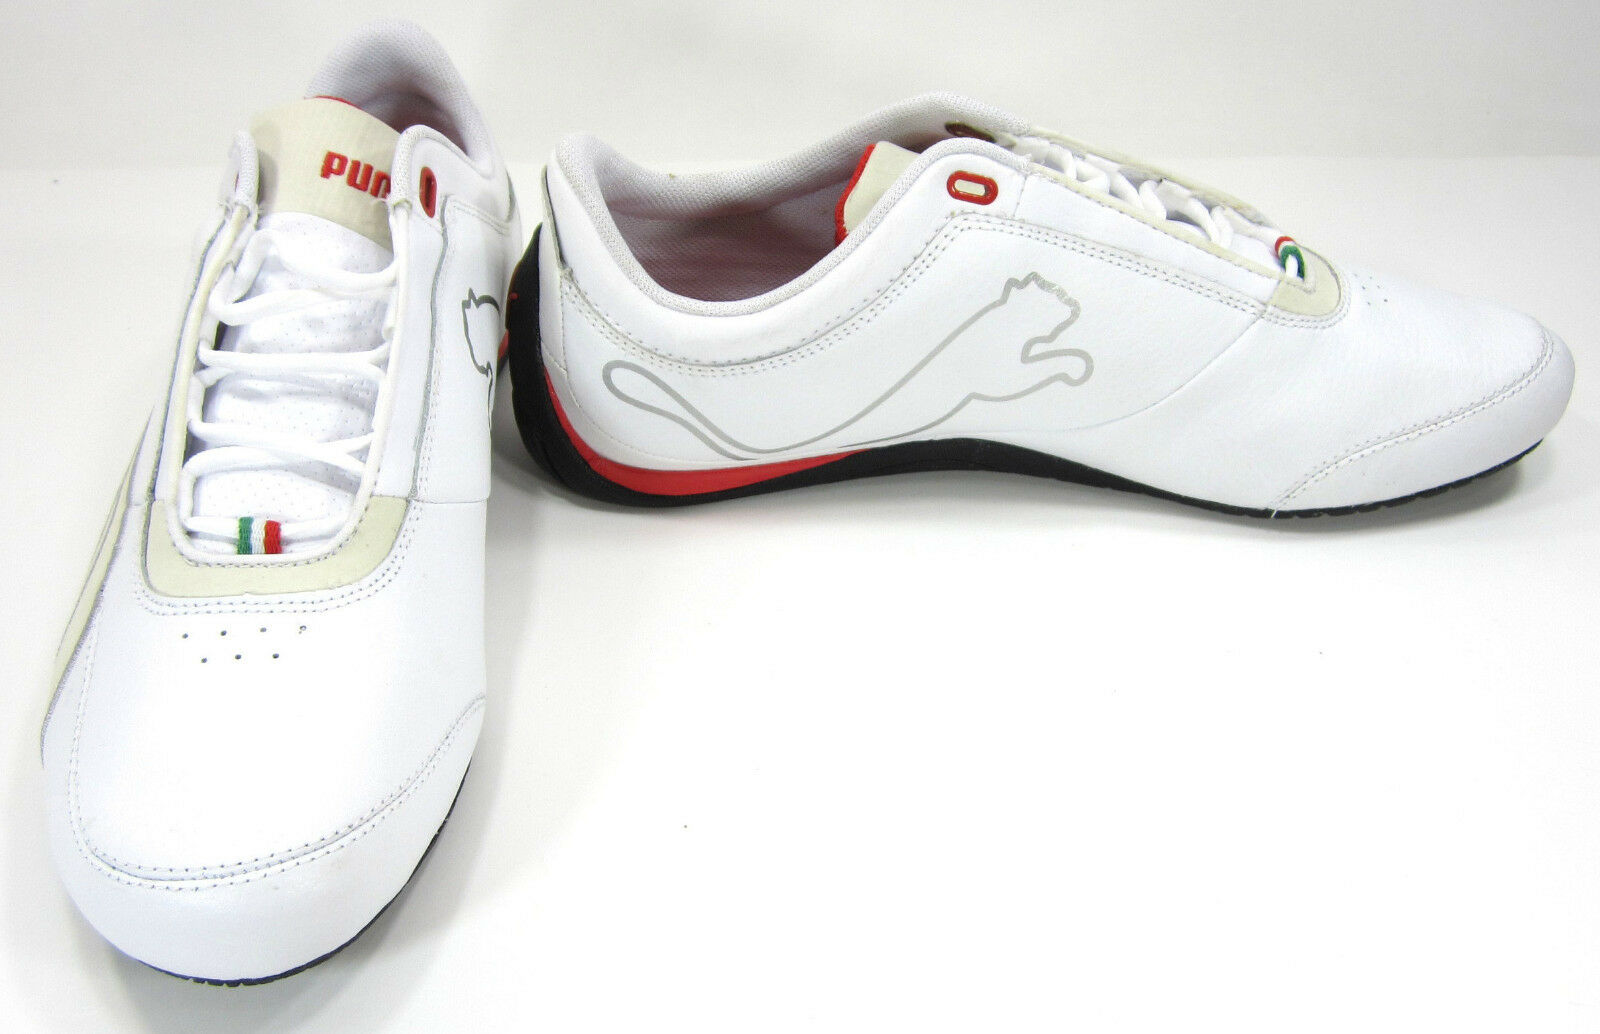 Puma Shoes Drift Cat IV 4 SF CR Ferrrari White/Red  Size 9.5